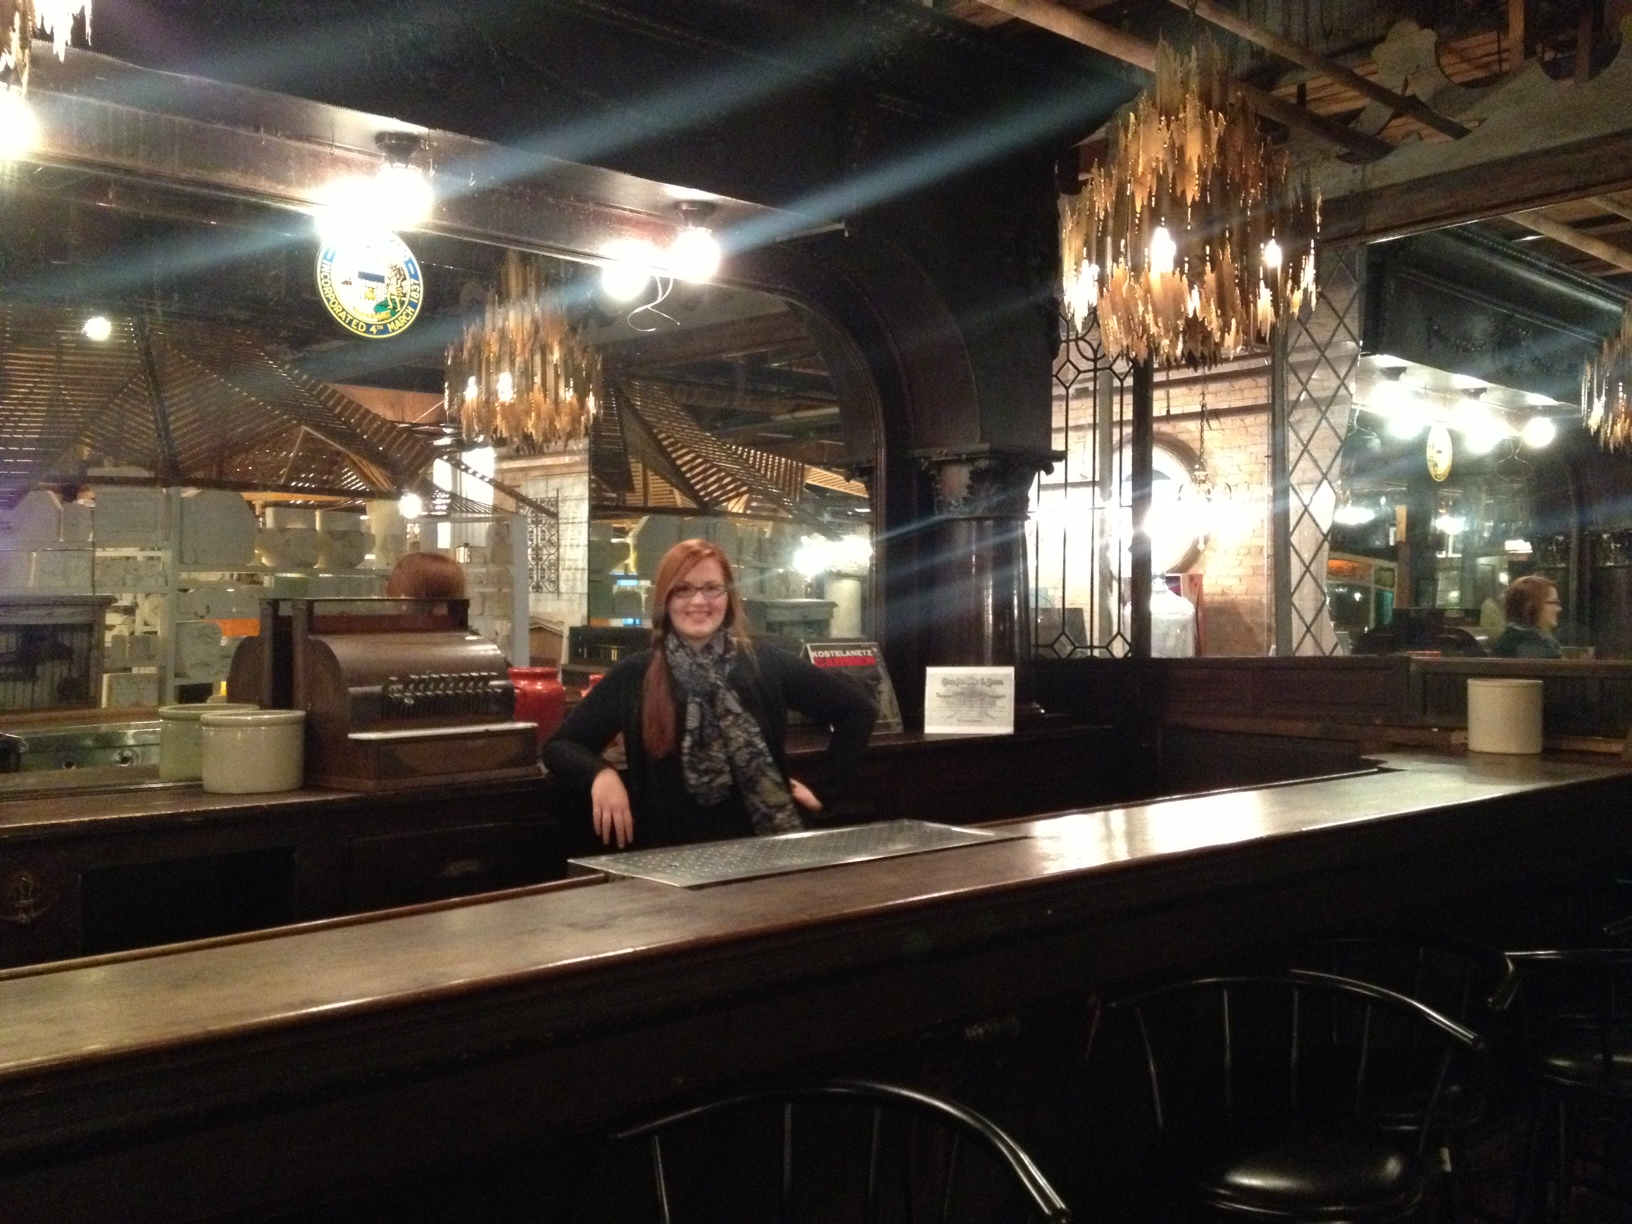 Theresa McMullen poses by one of the many vintage bar setups at Salvage One, Chicago IL.